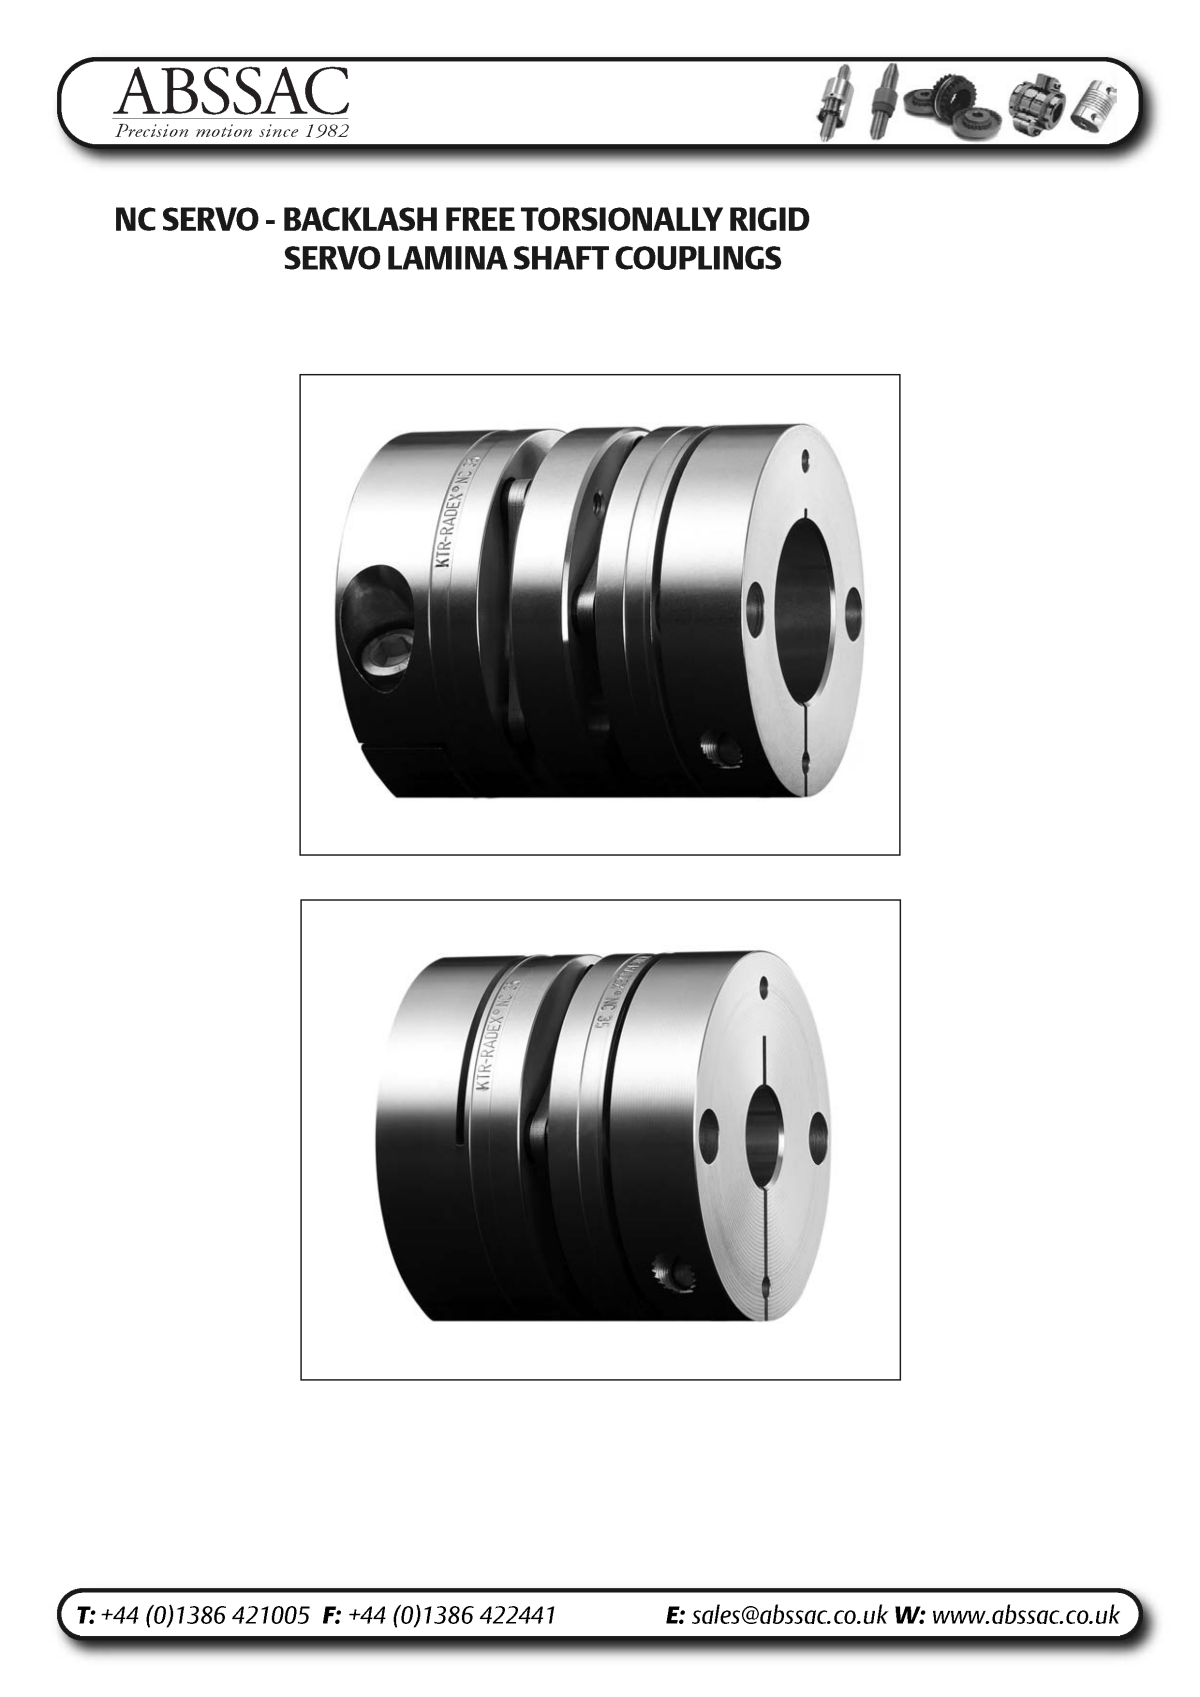 Abssac NC Servo Disc Shaft Coupling Page 1